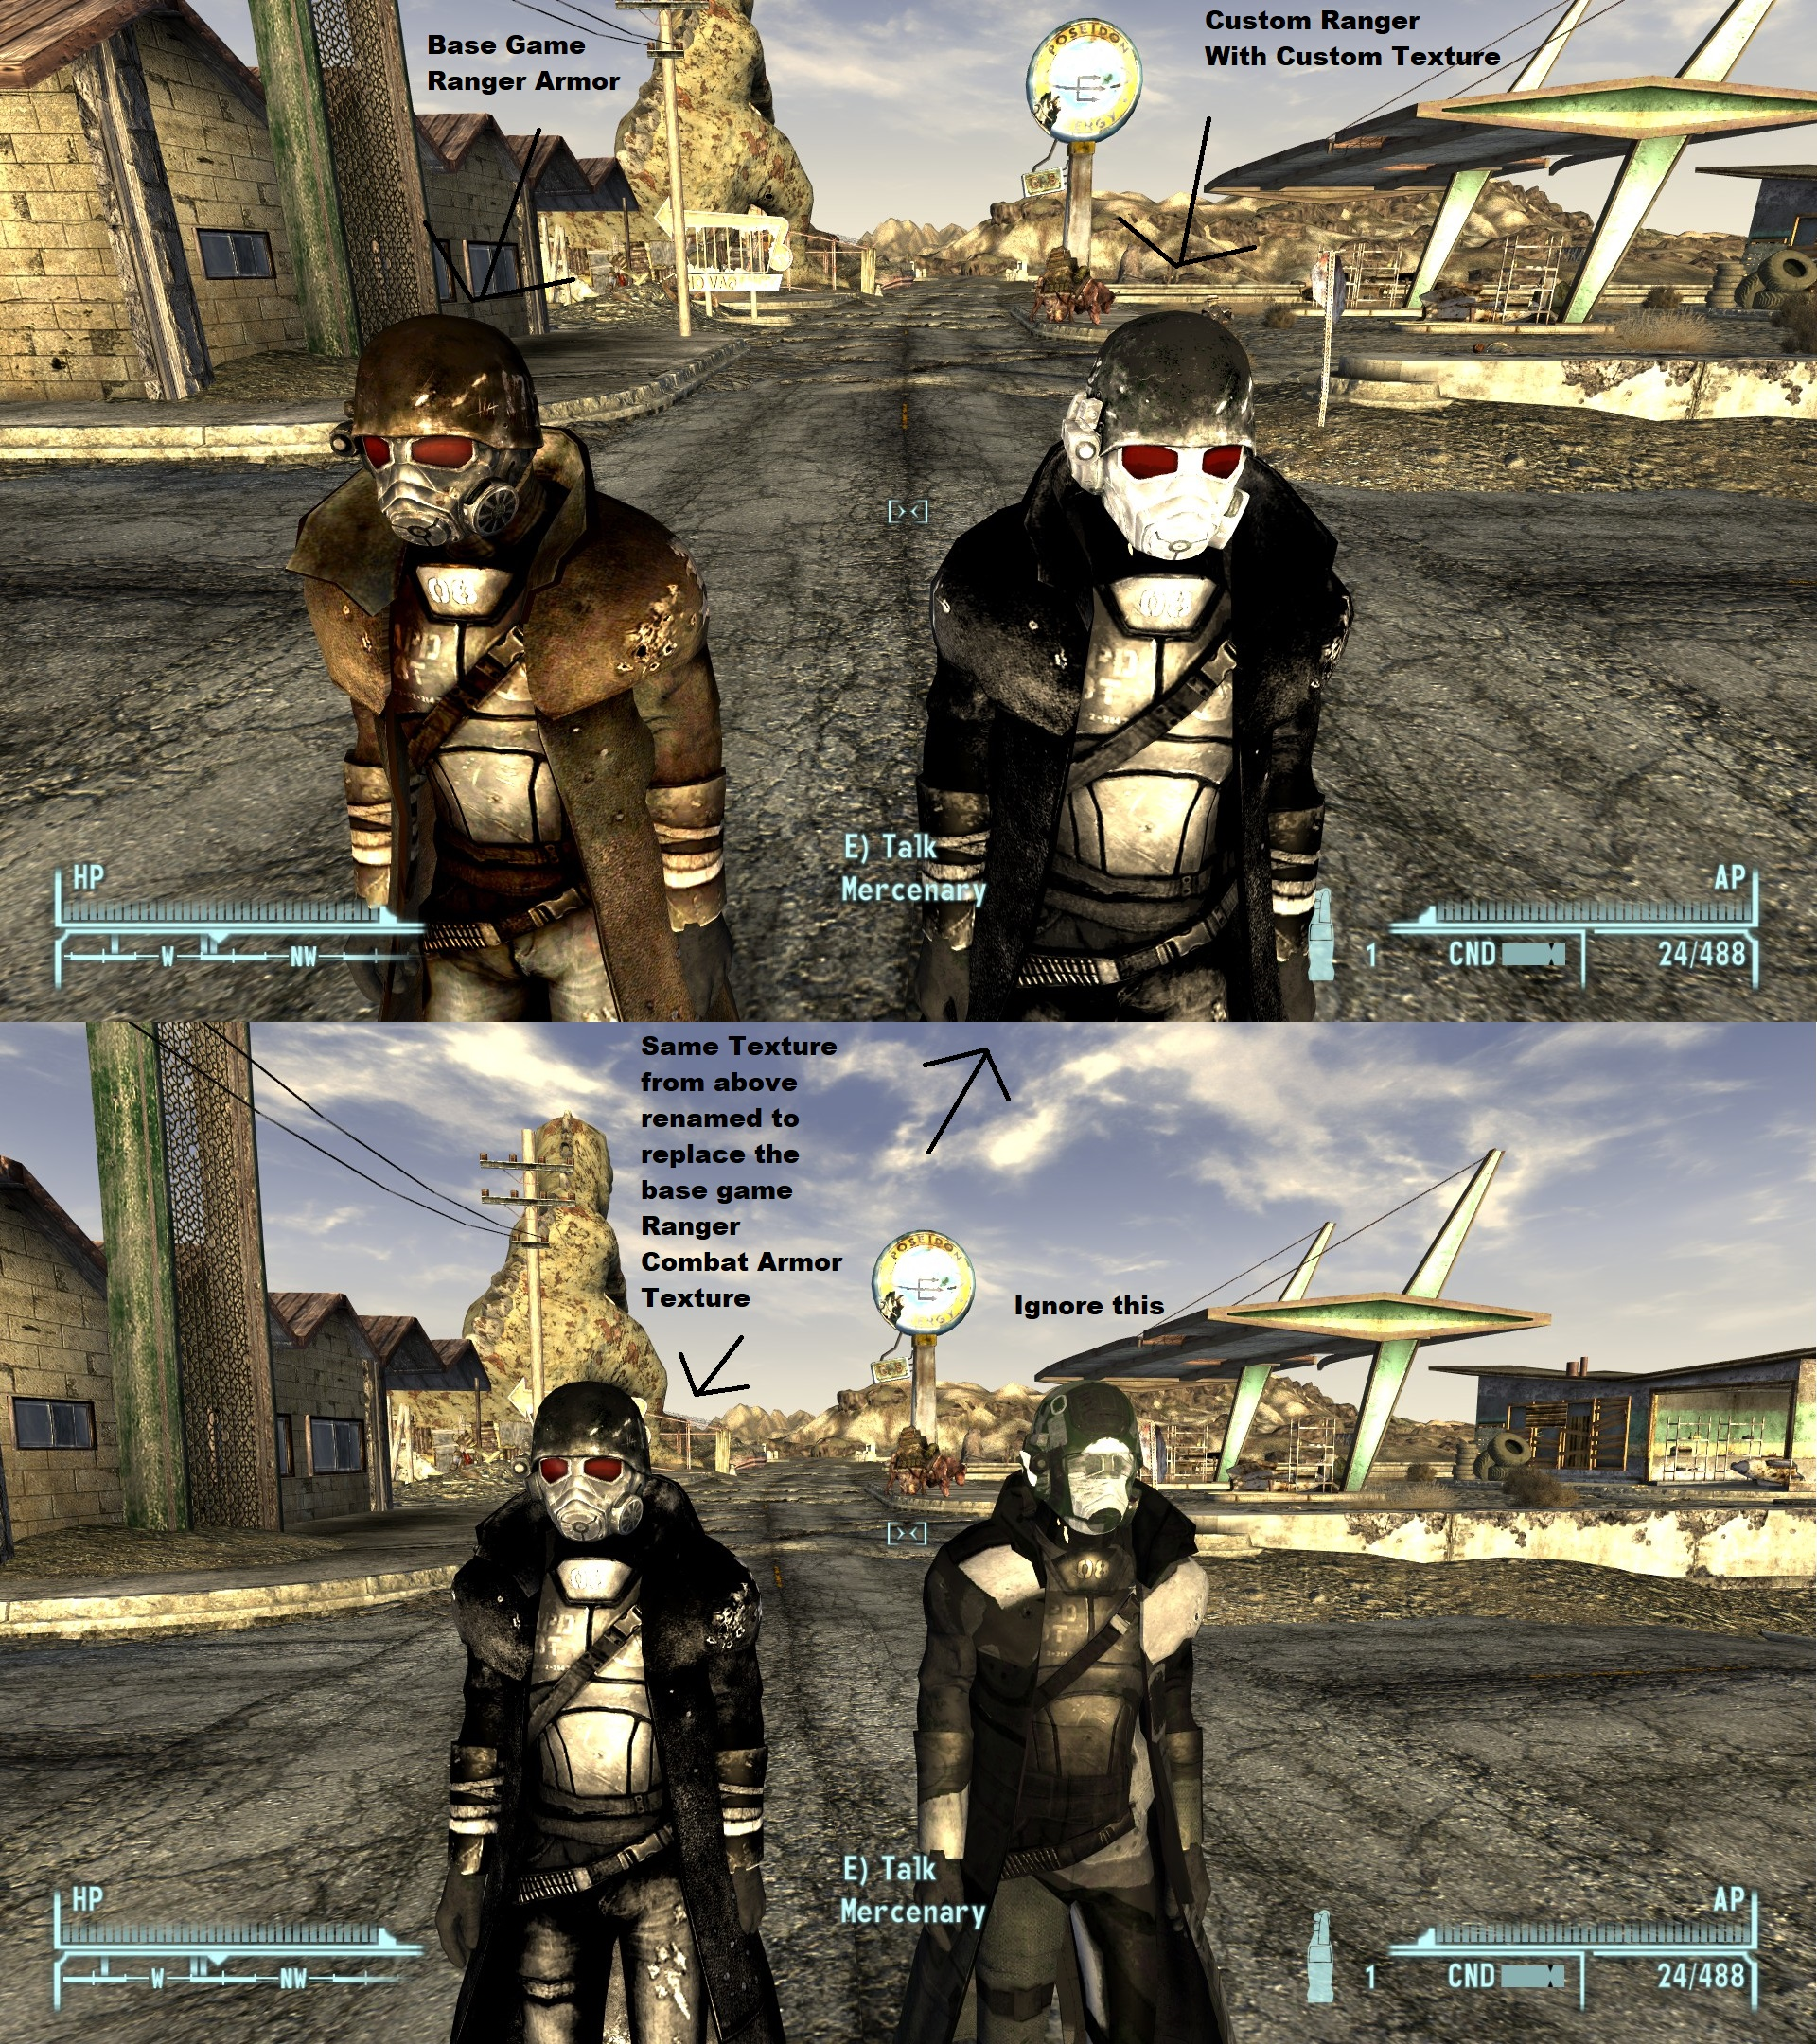 Custom Ranger Combat Armor Glitch At Fallout New Vegas Mods And